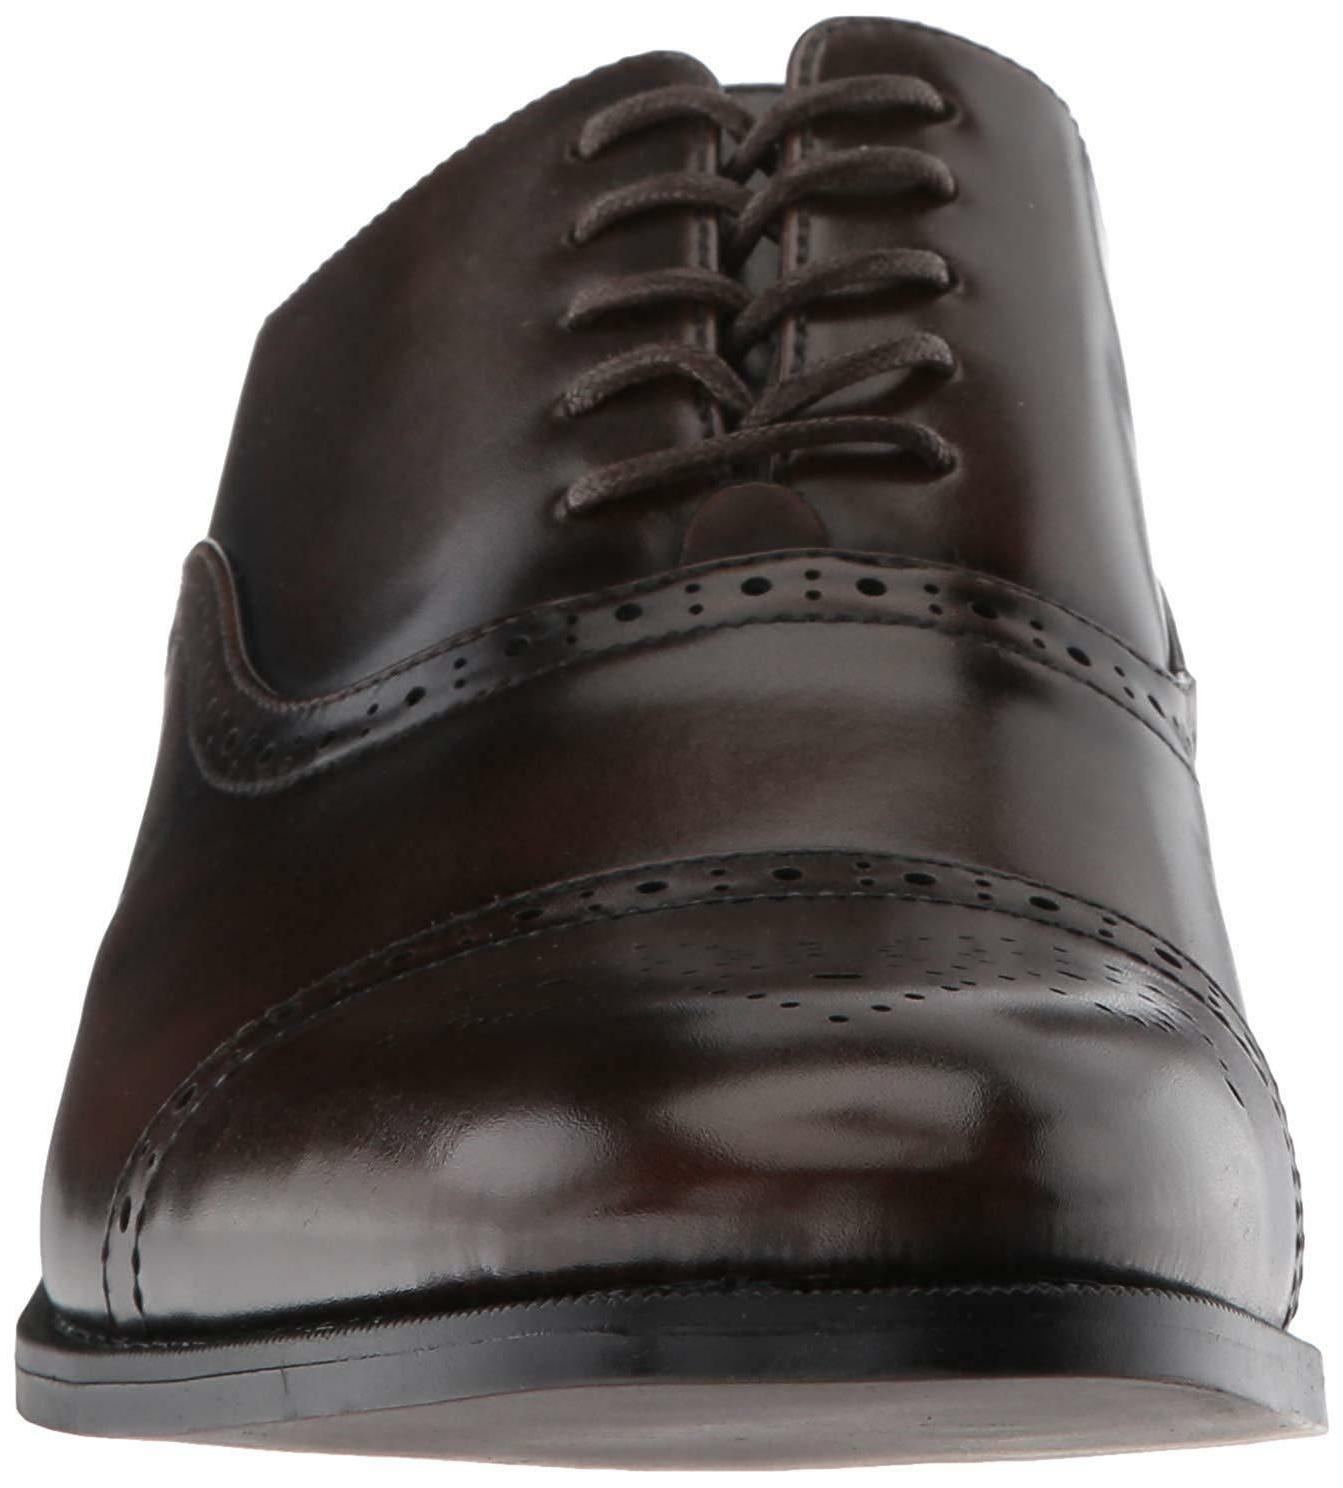 Unlisted Kenneth Men's Time Oxford